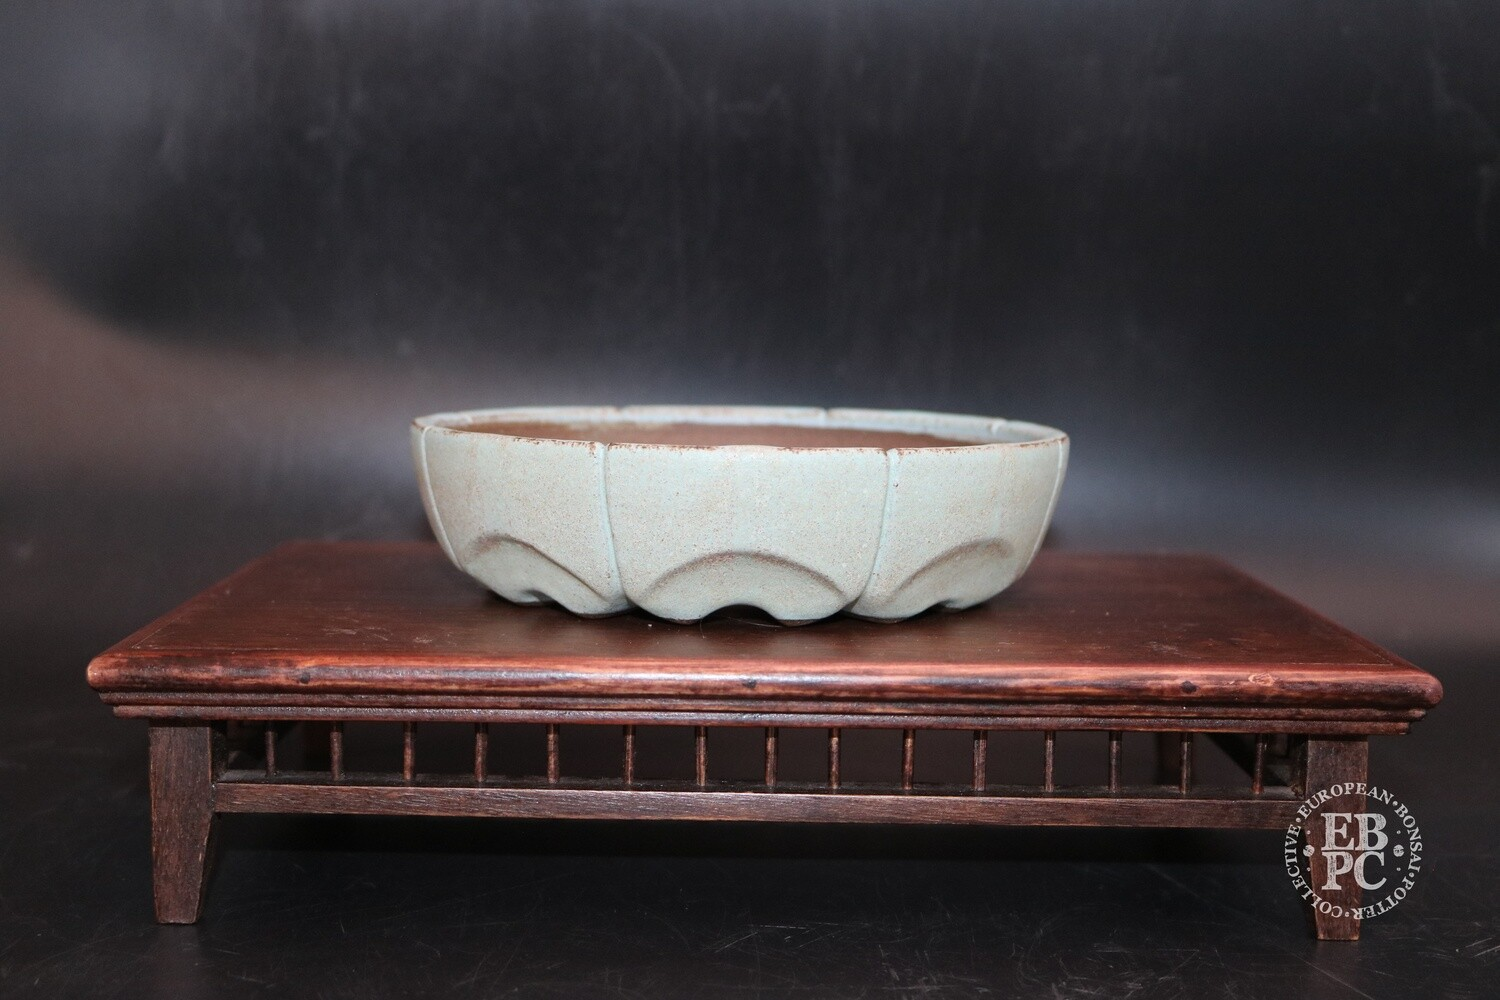 SOLD - Me and Raimondi - 16cm; Round with segmented design; Glazed; Cream; Greens; Yellows; Matjaz Raimondi & Nastja Legvart